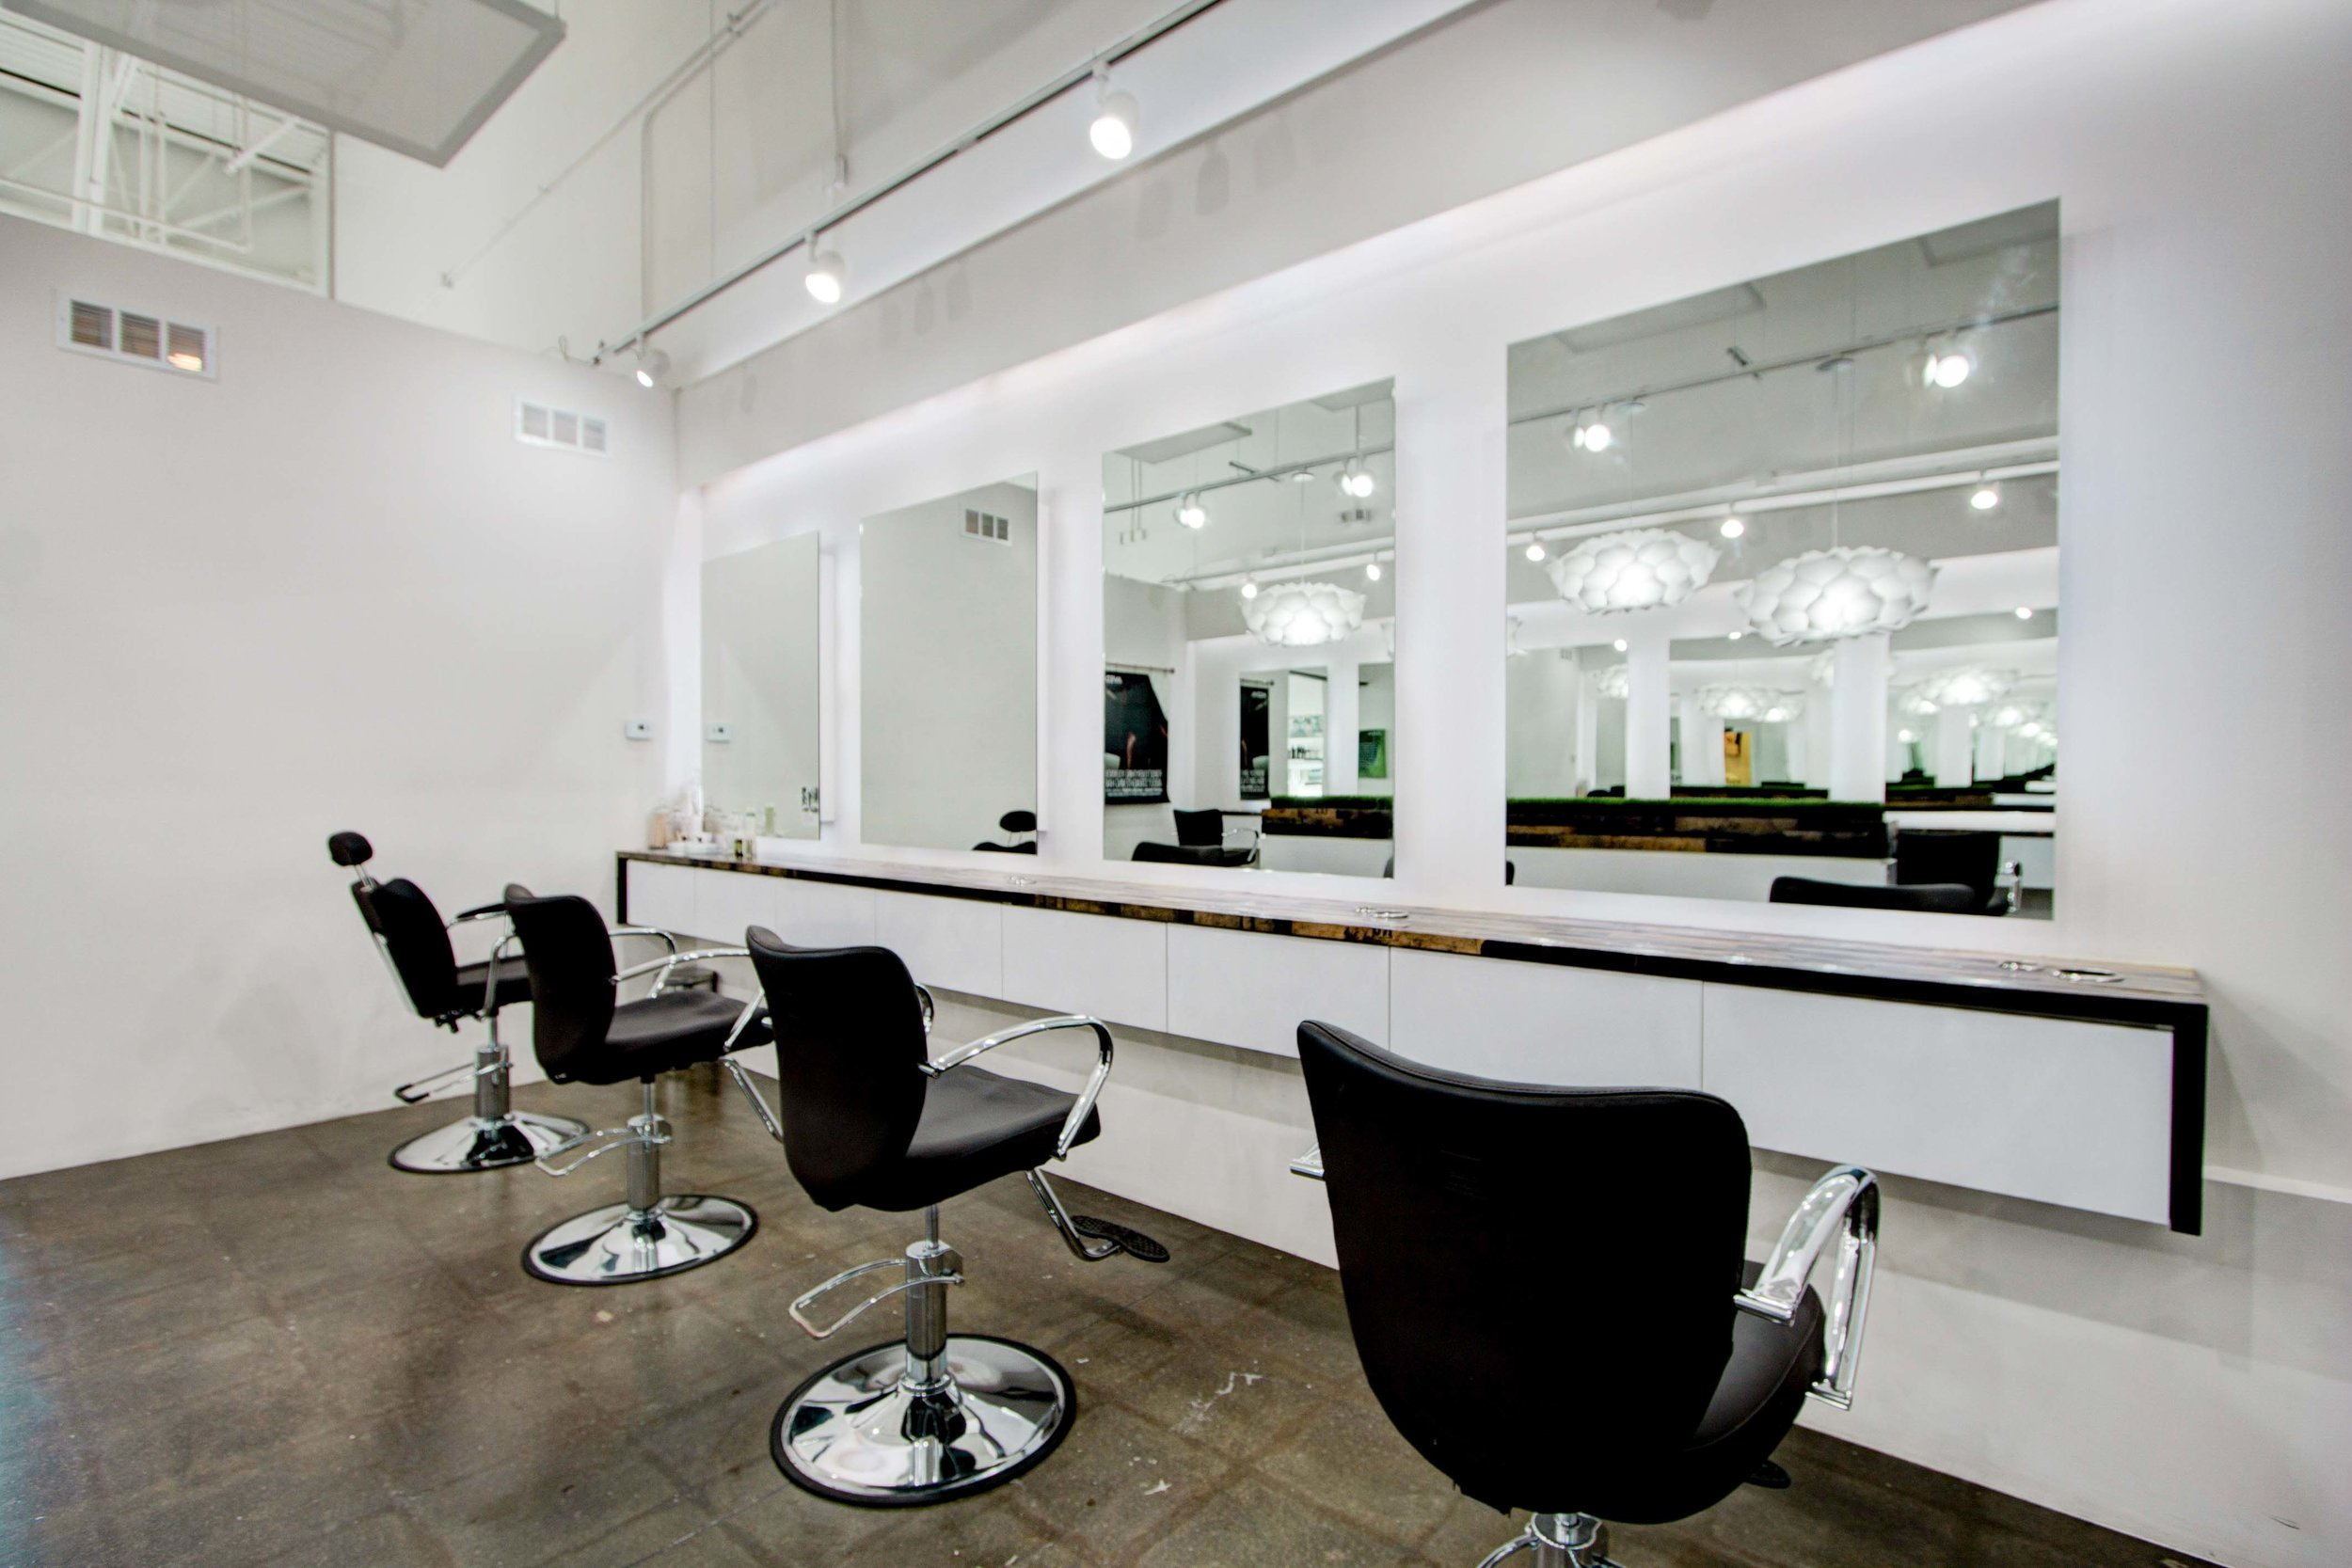 Salon Industrial Bauen Designed Salon Was Named As A 2016 Salon Of The Year By